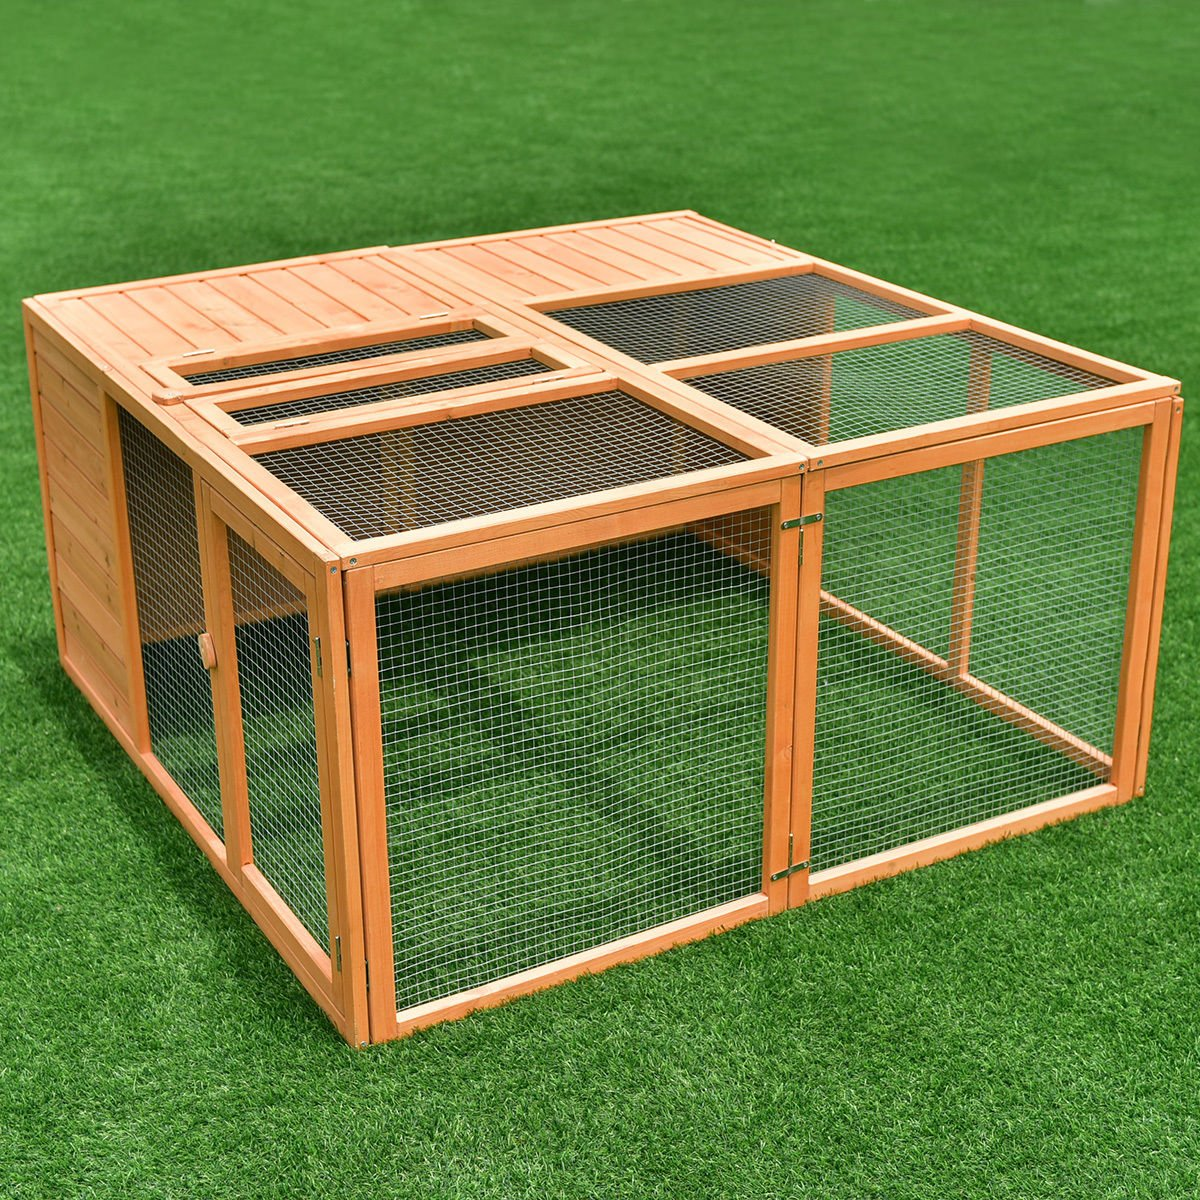 Tangkula Chicken Coop, Wooden Garden Backyard Bunny Chicken Rabbit Duck Small Animals Cage with 2 Doors,Hen House (47'') by Tangkula (Image #3)